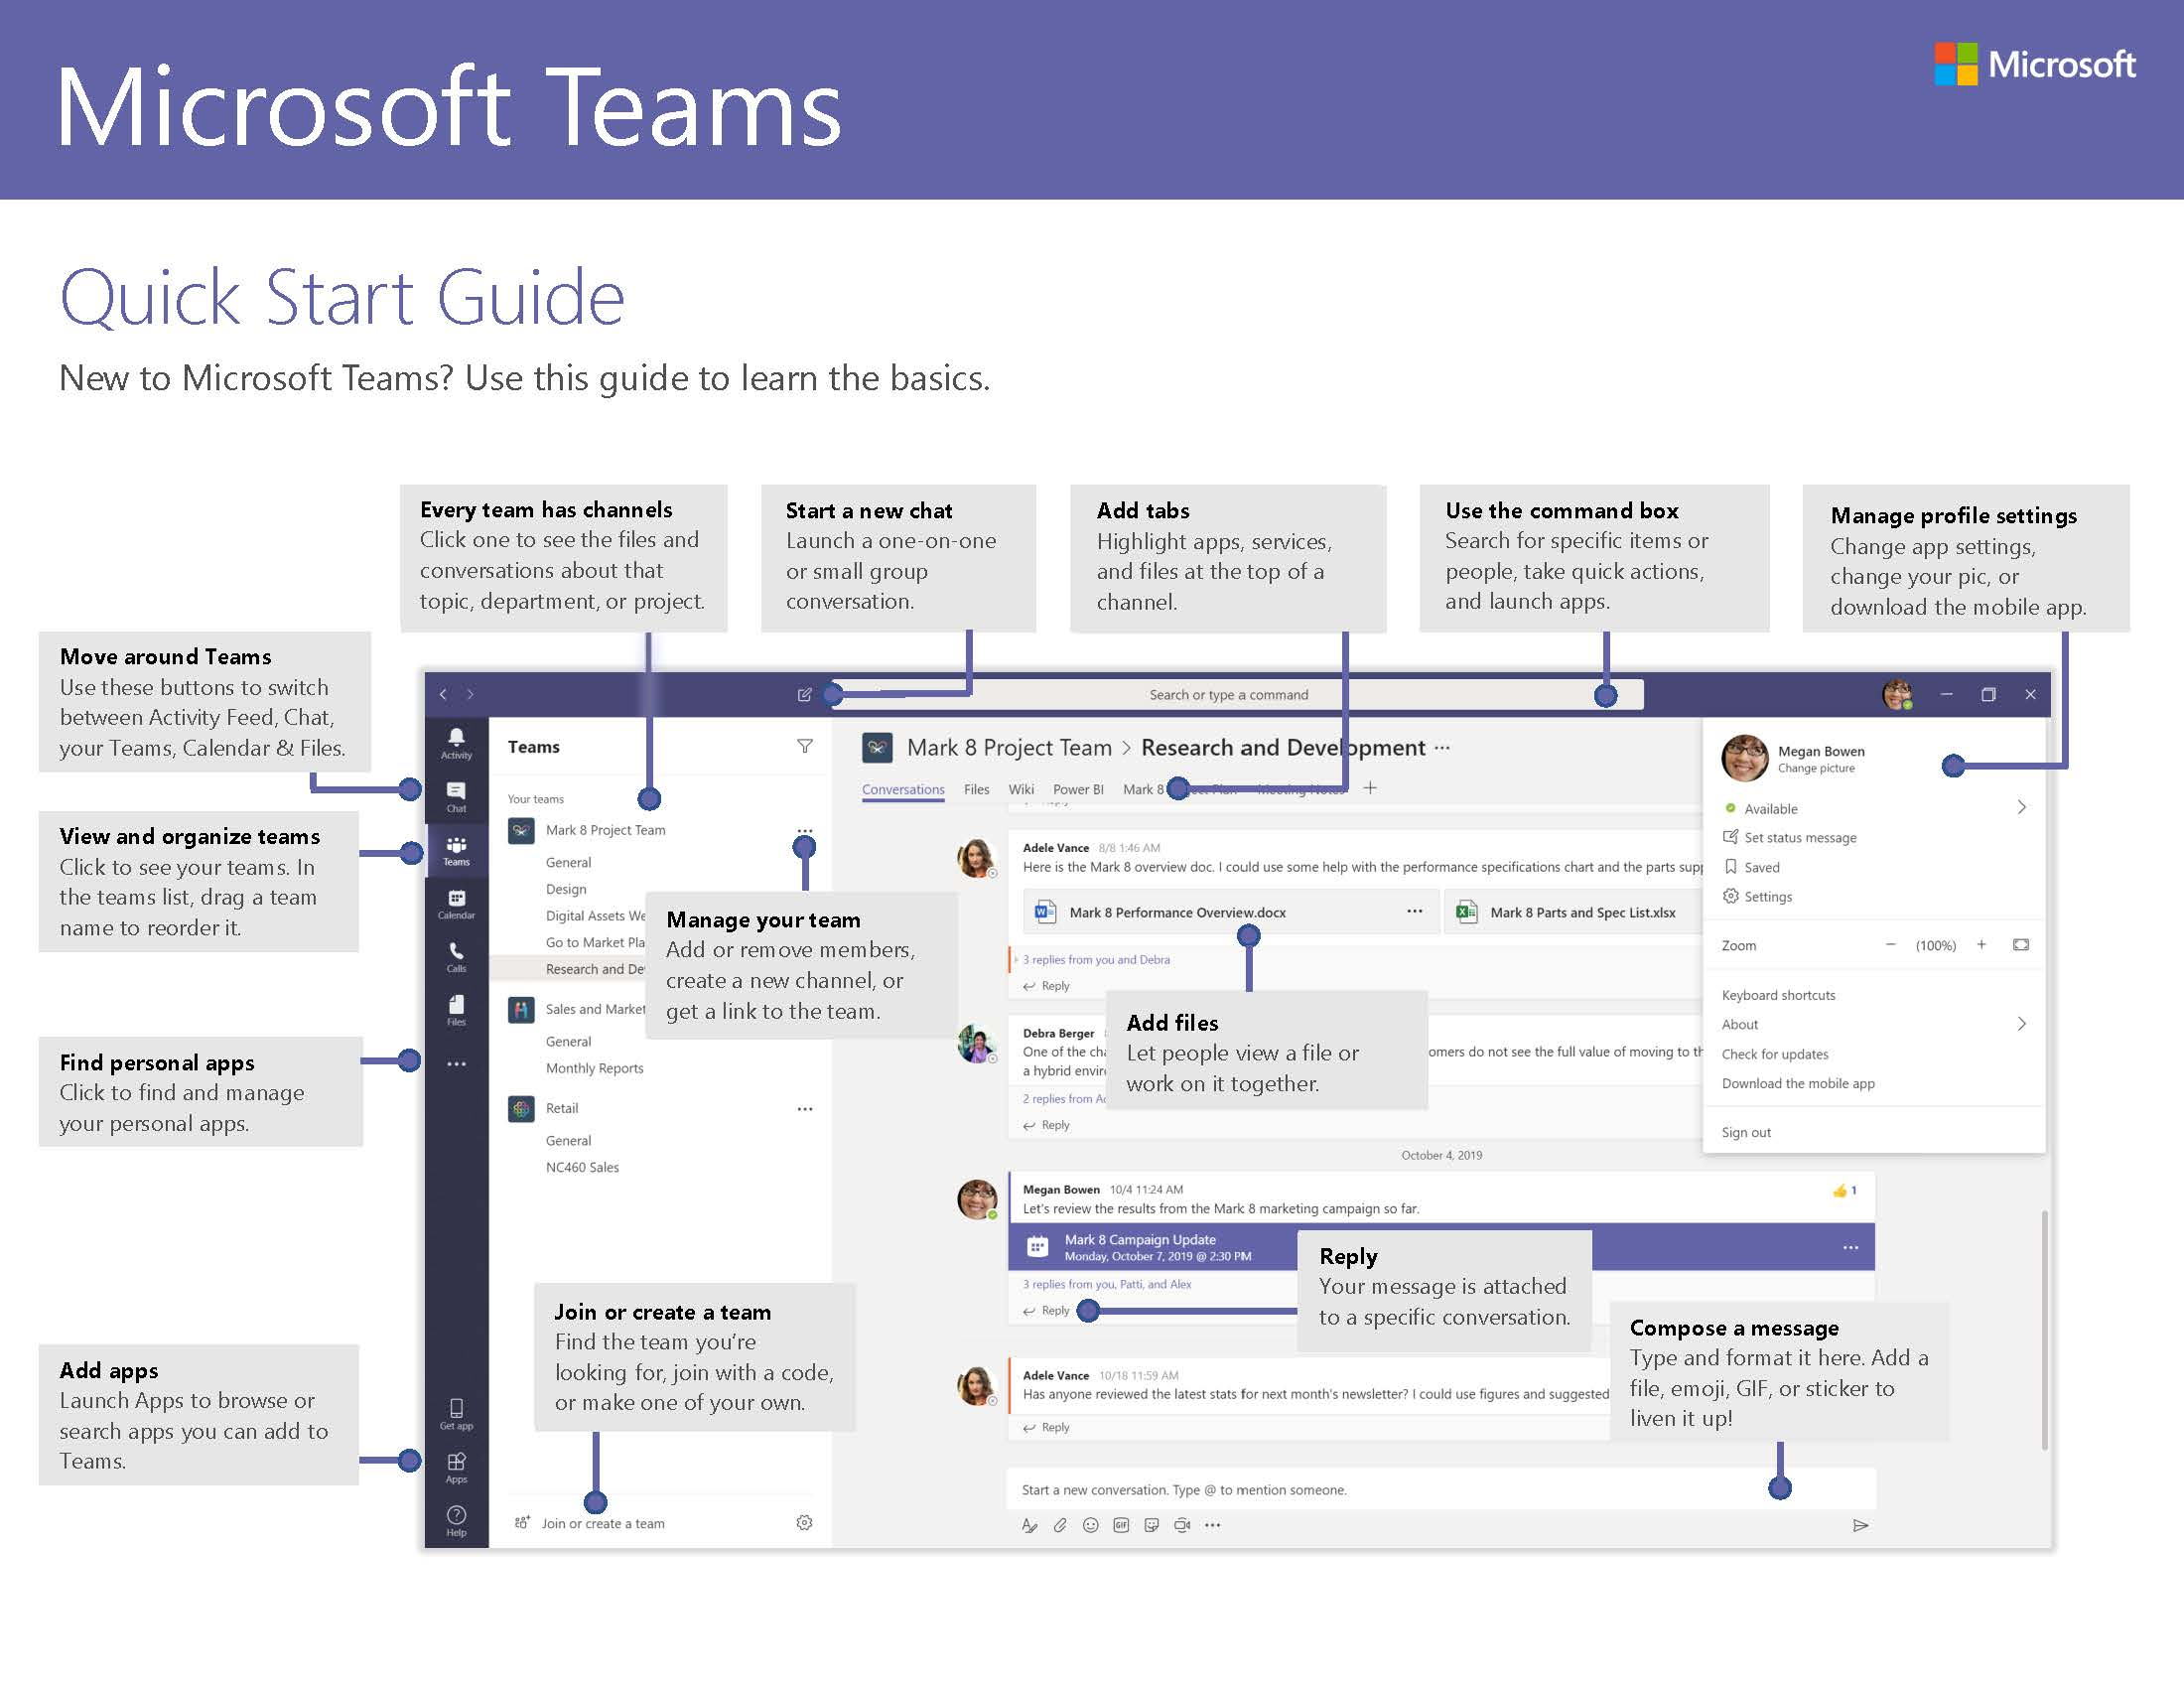 Microsoft Teams Quick Start Guide Page 1